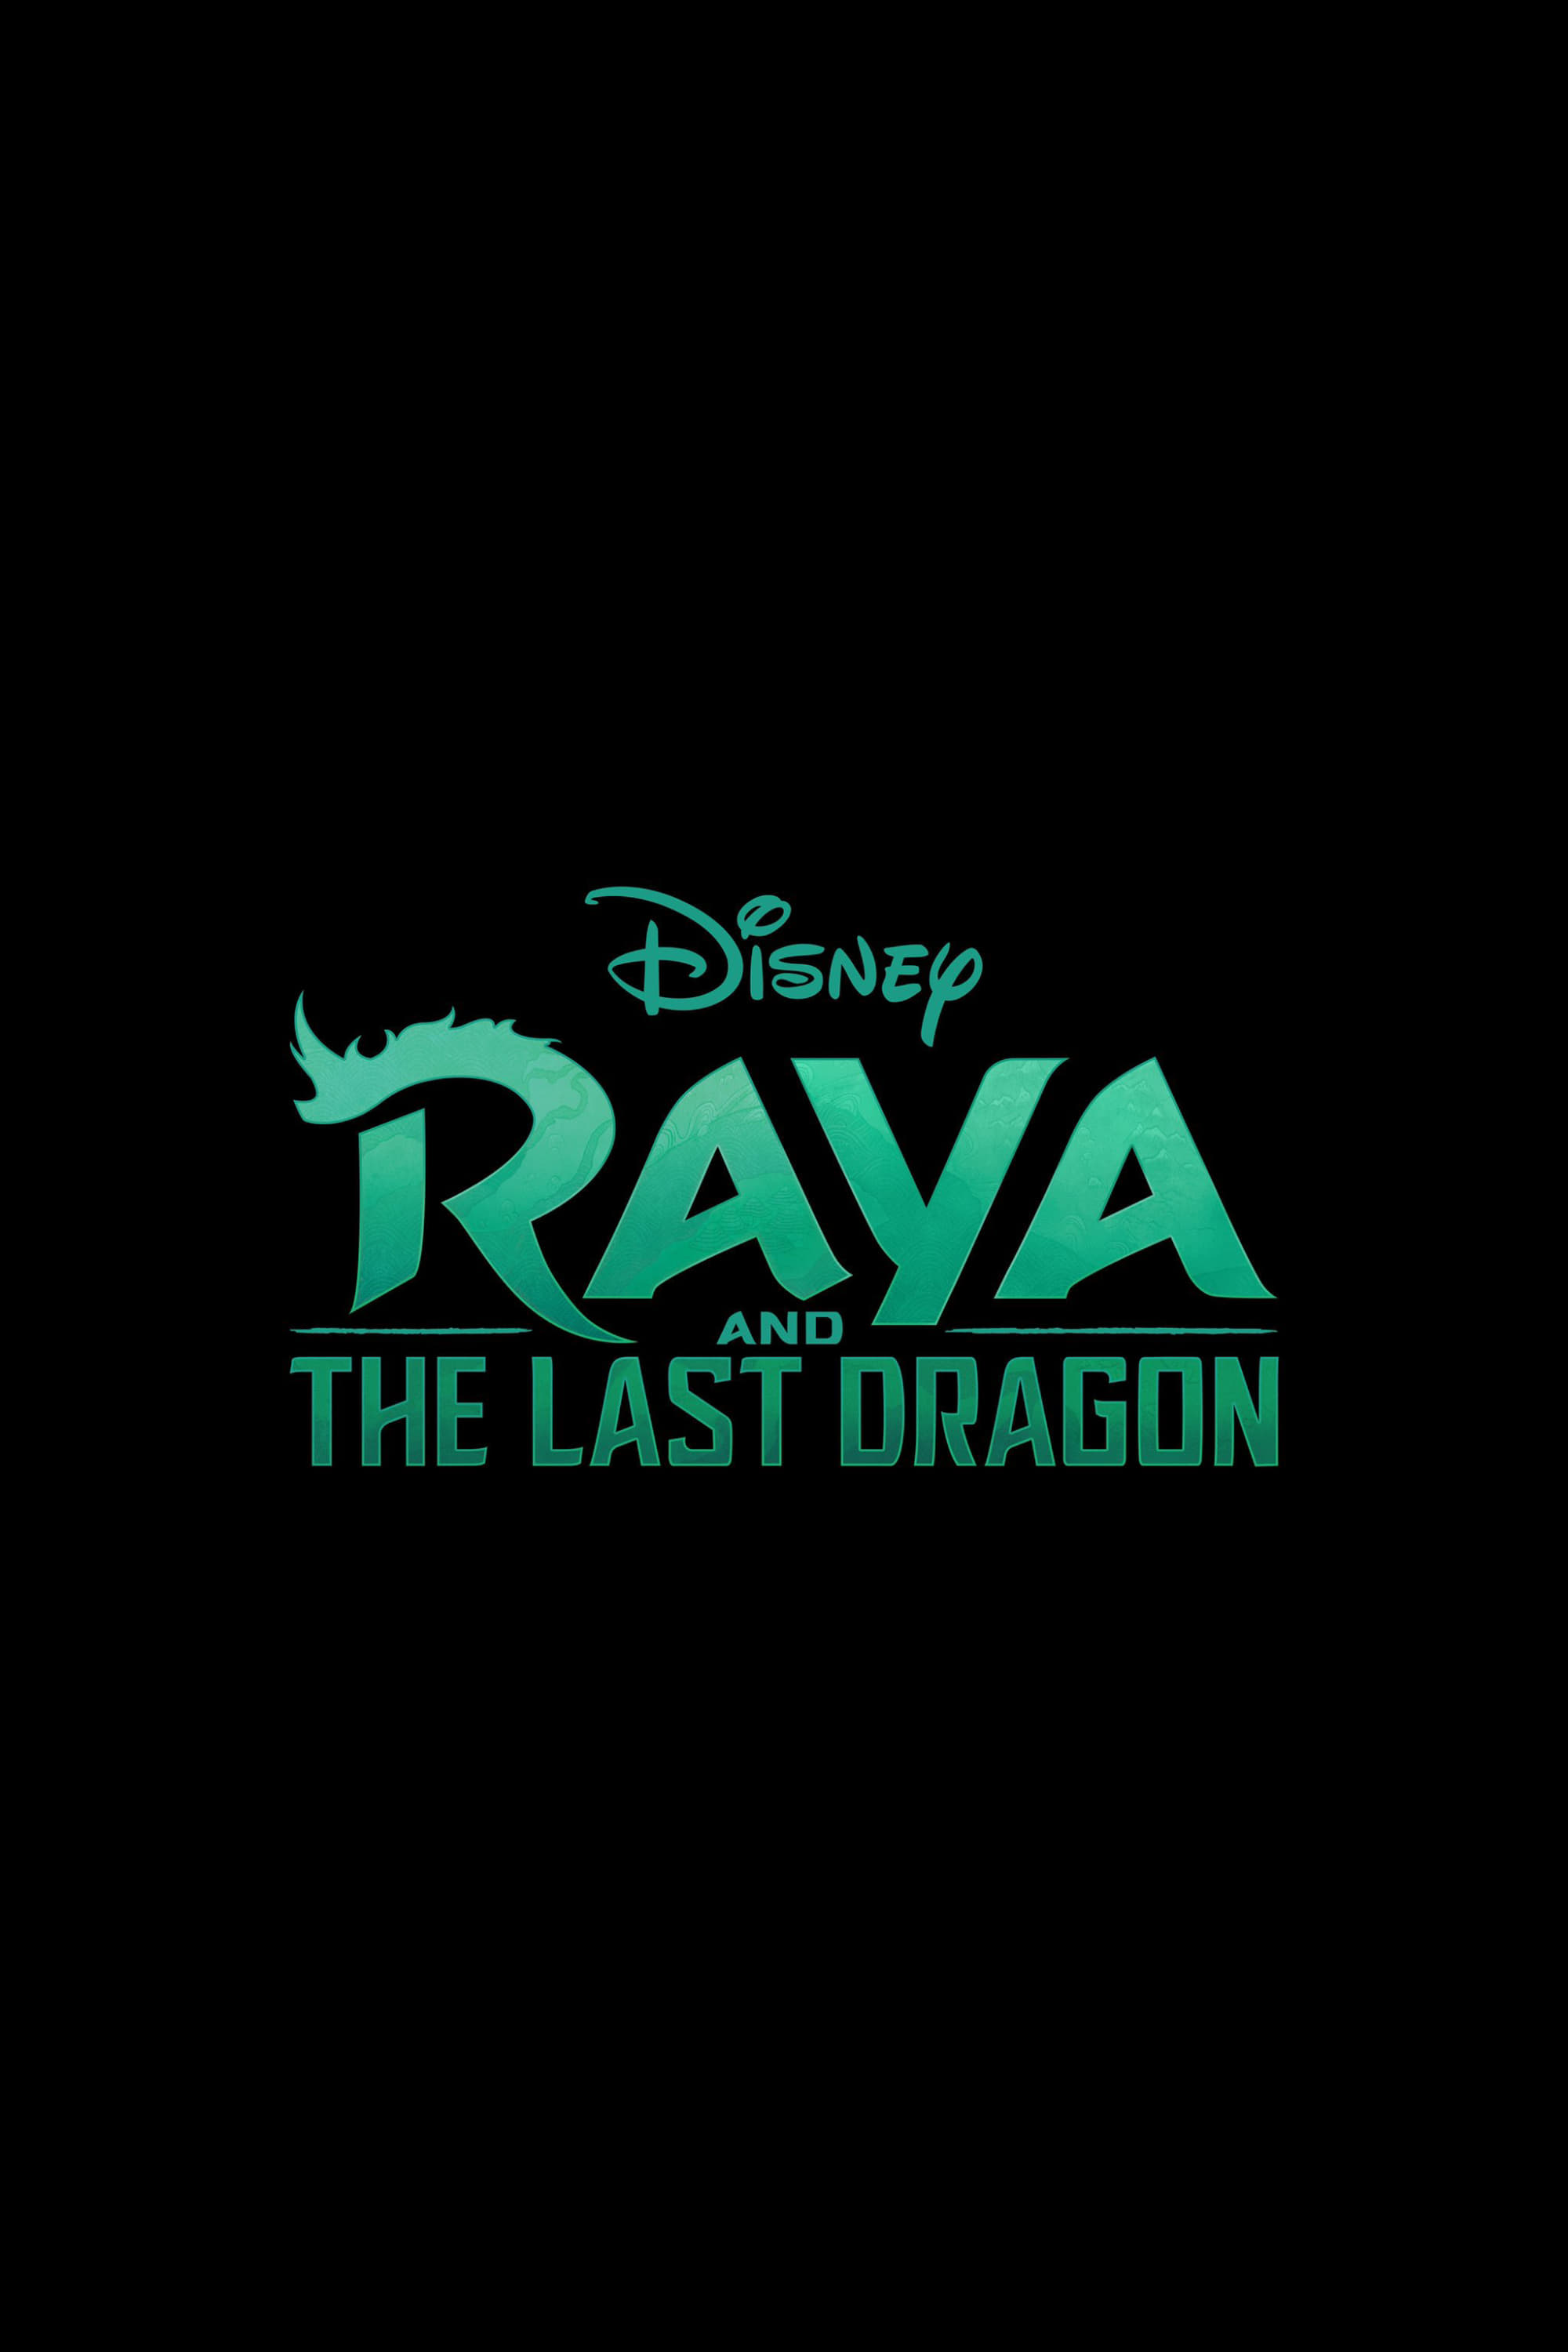 Poster and image movie Raya and the Last Dragon